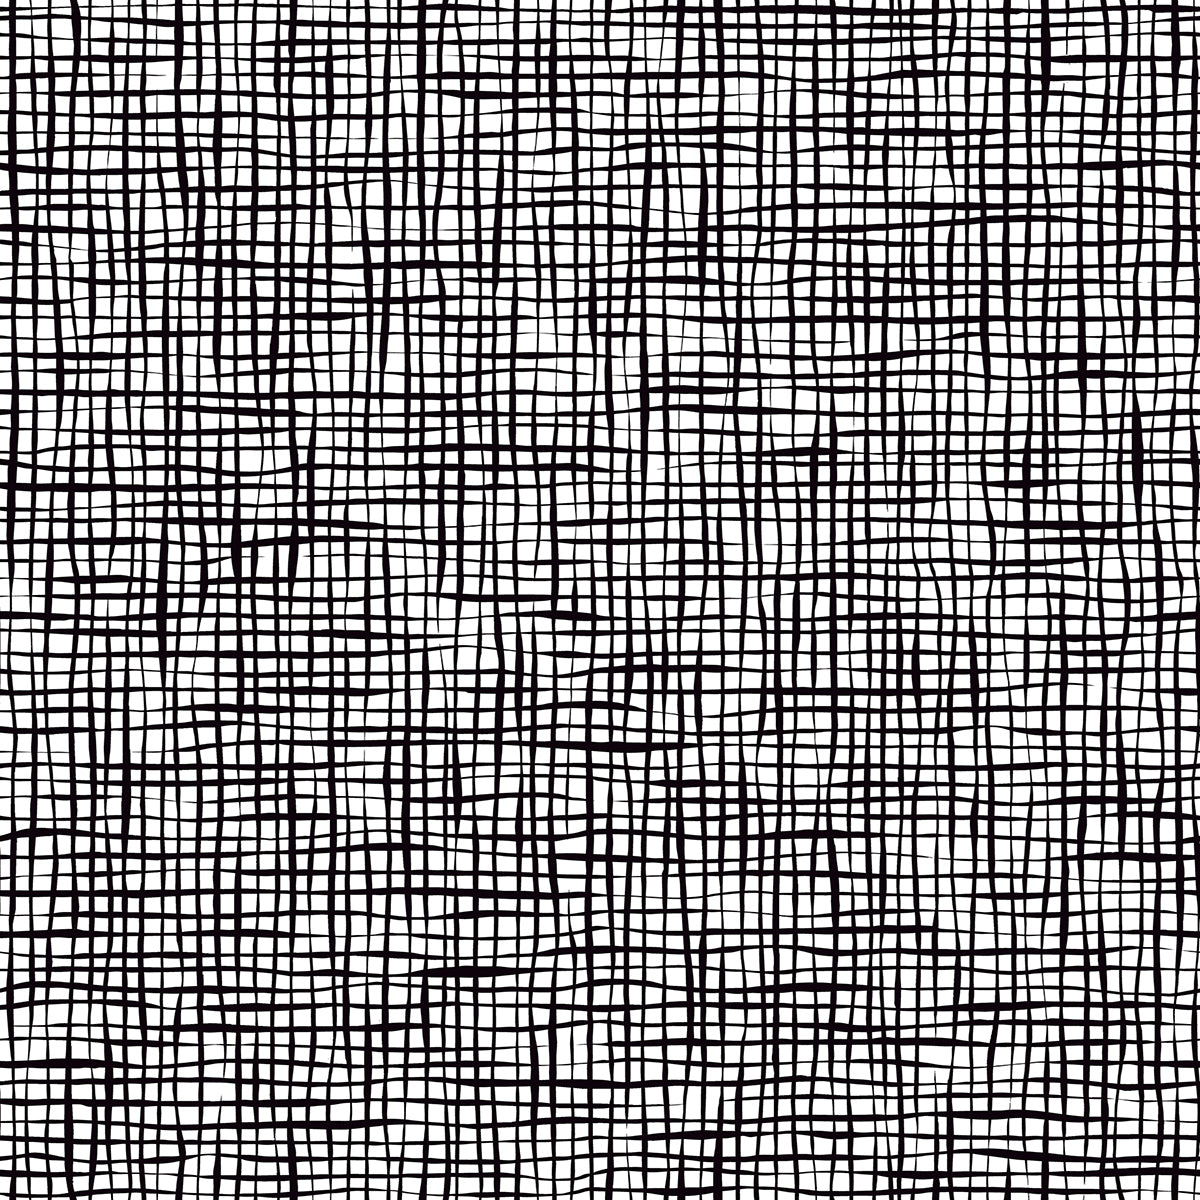 Shanti Black Grid Wallpaper